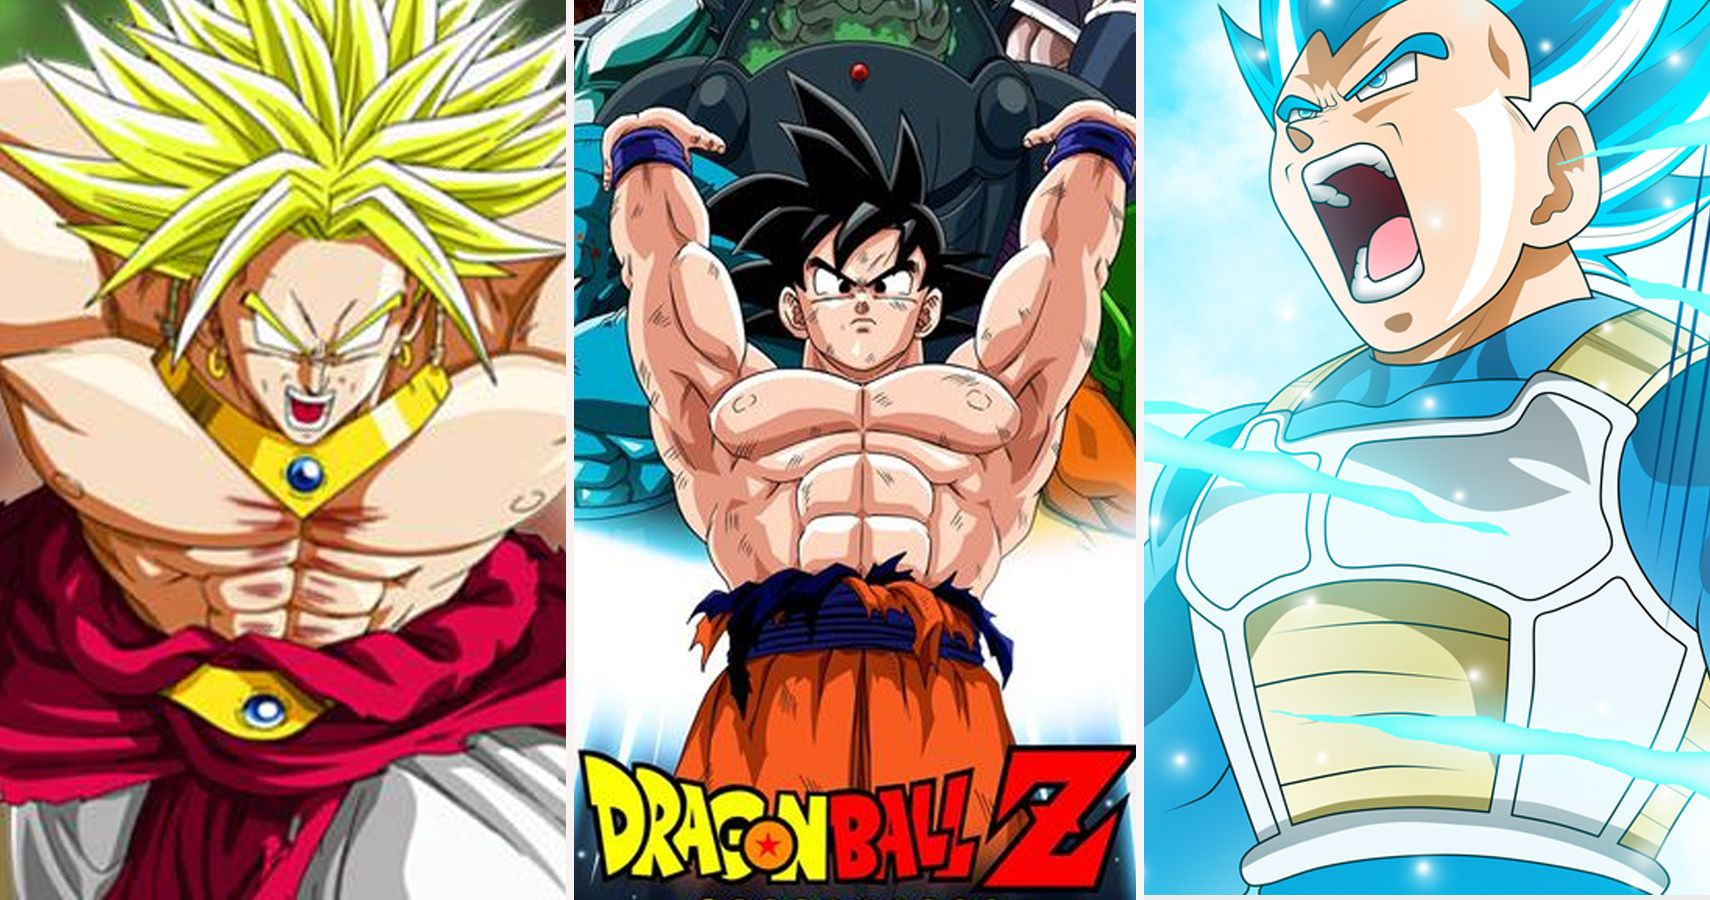 Ranking The Dragon Ball Movies From Worst To Best Thegamer